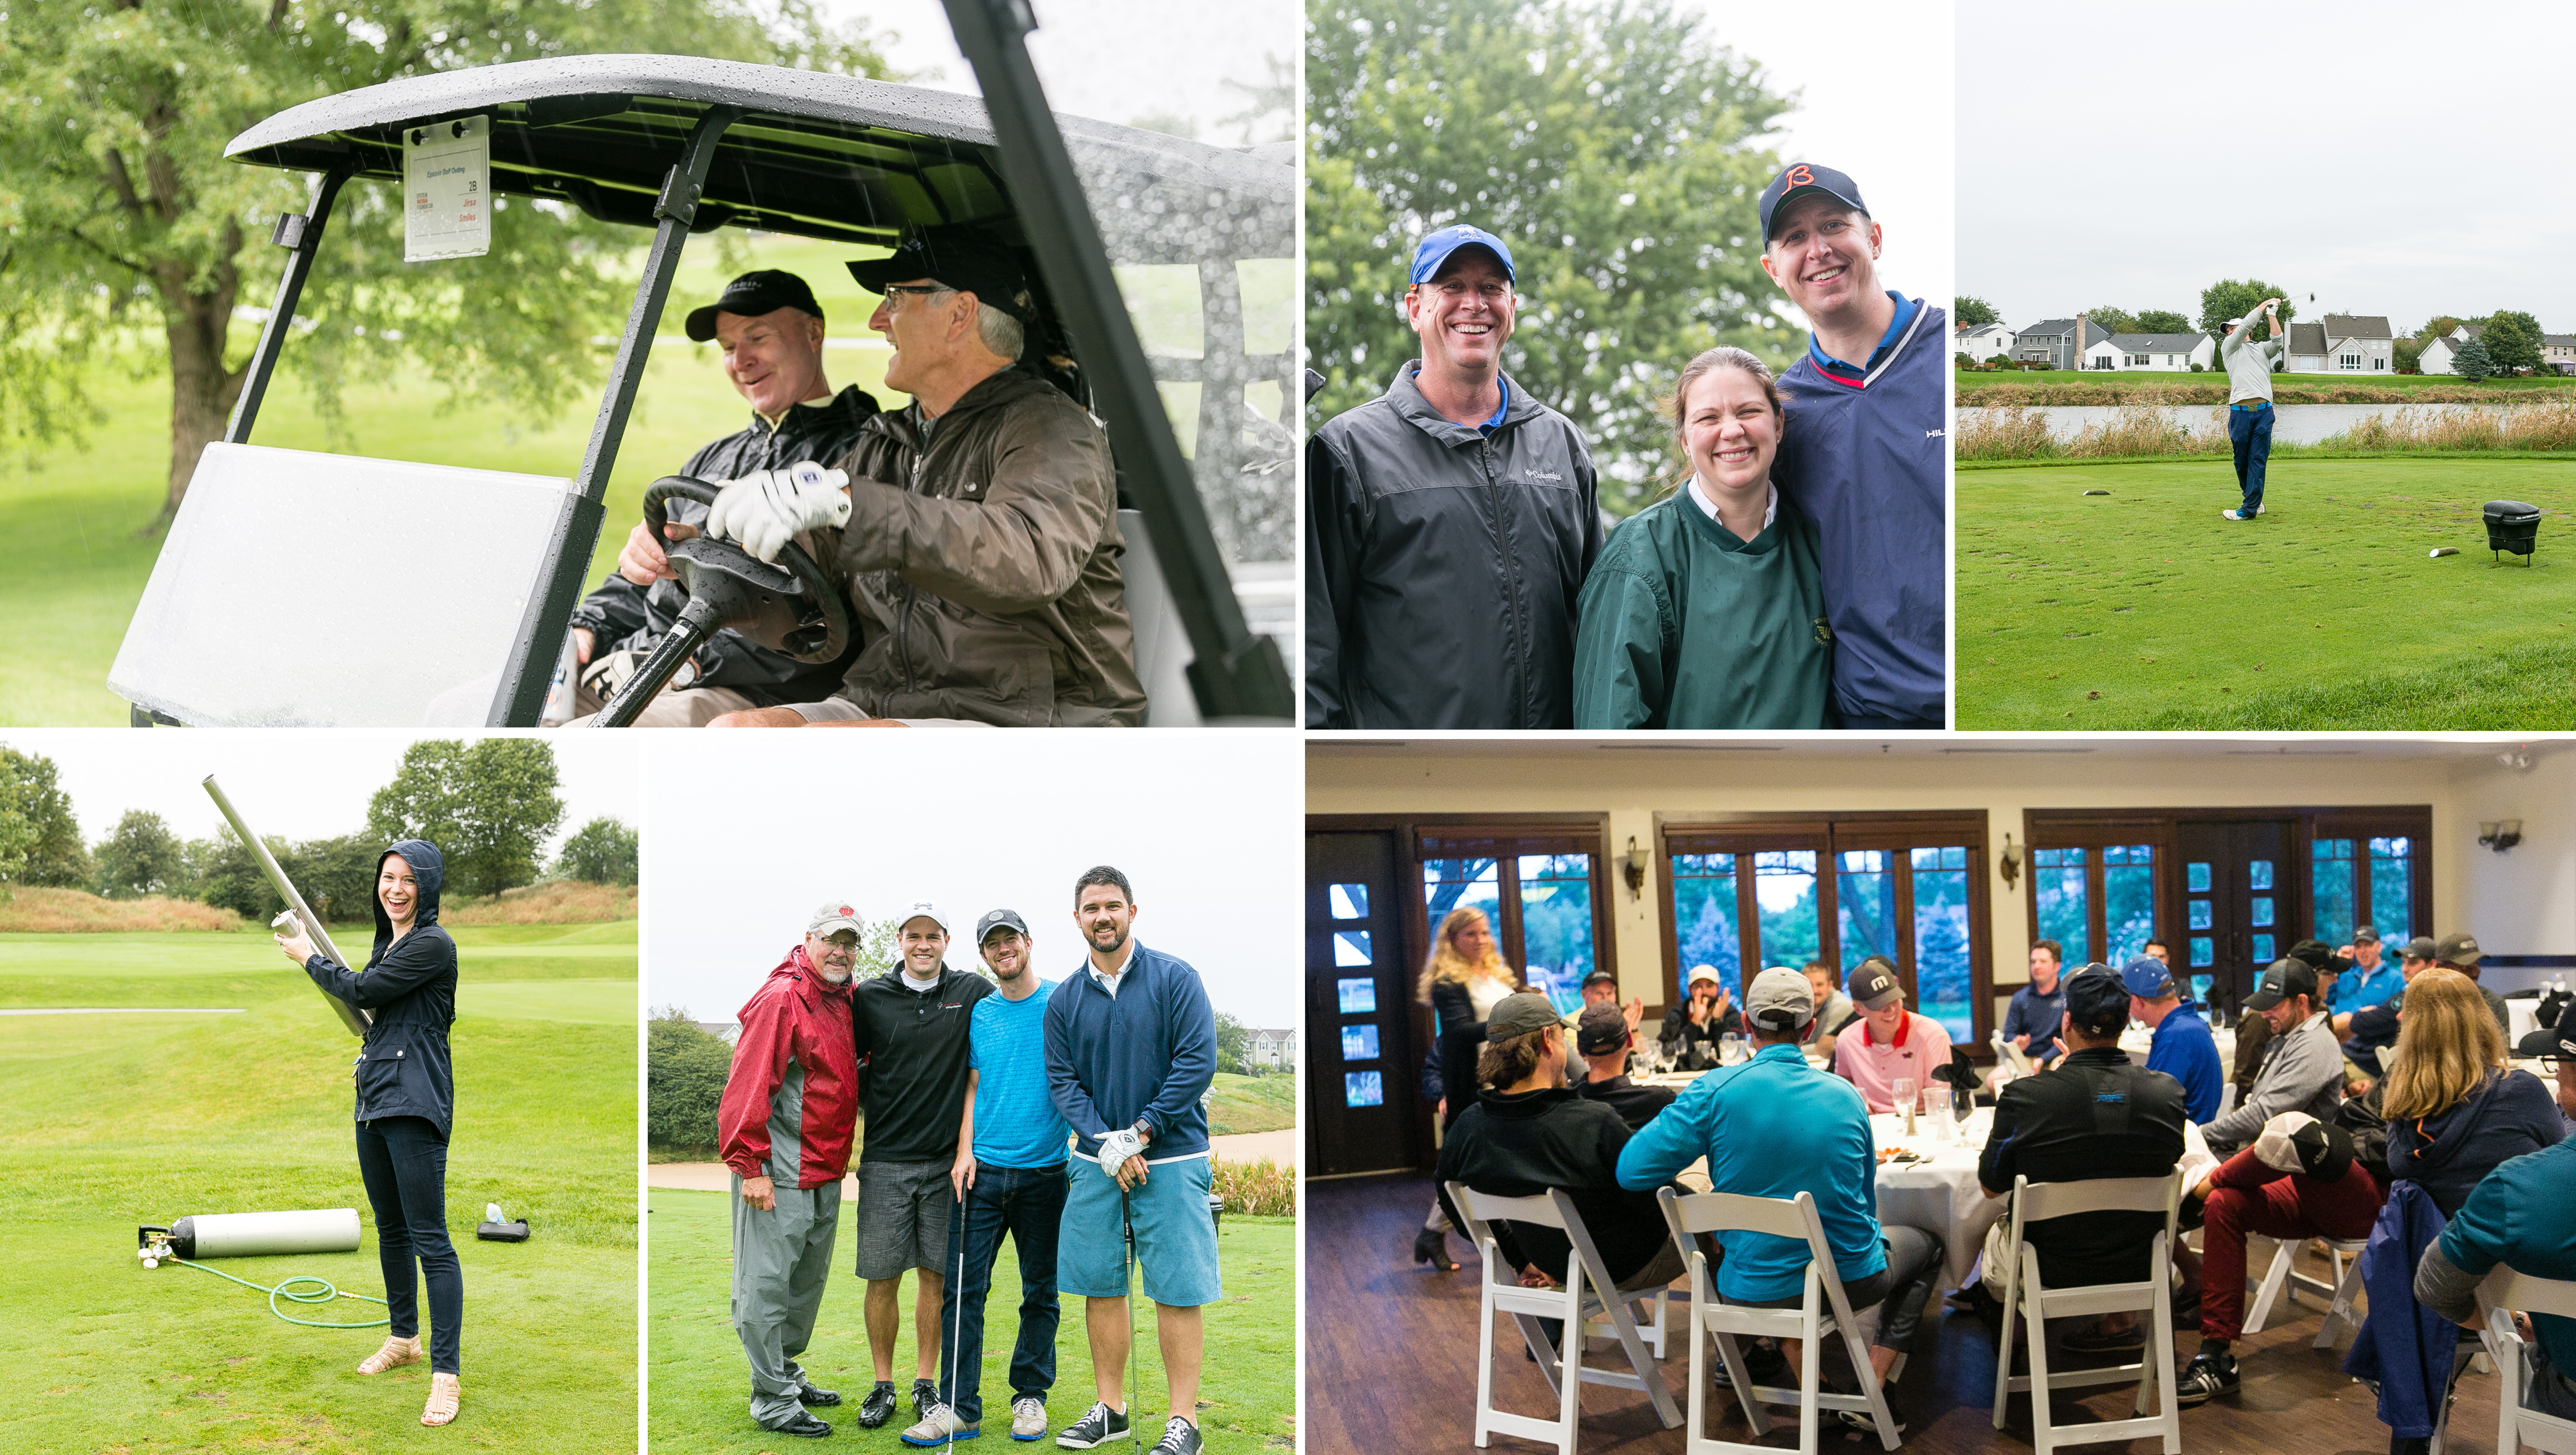 Golf-Outing-Collage.jpg?mtime=2018091410